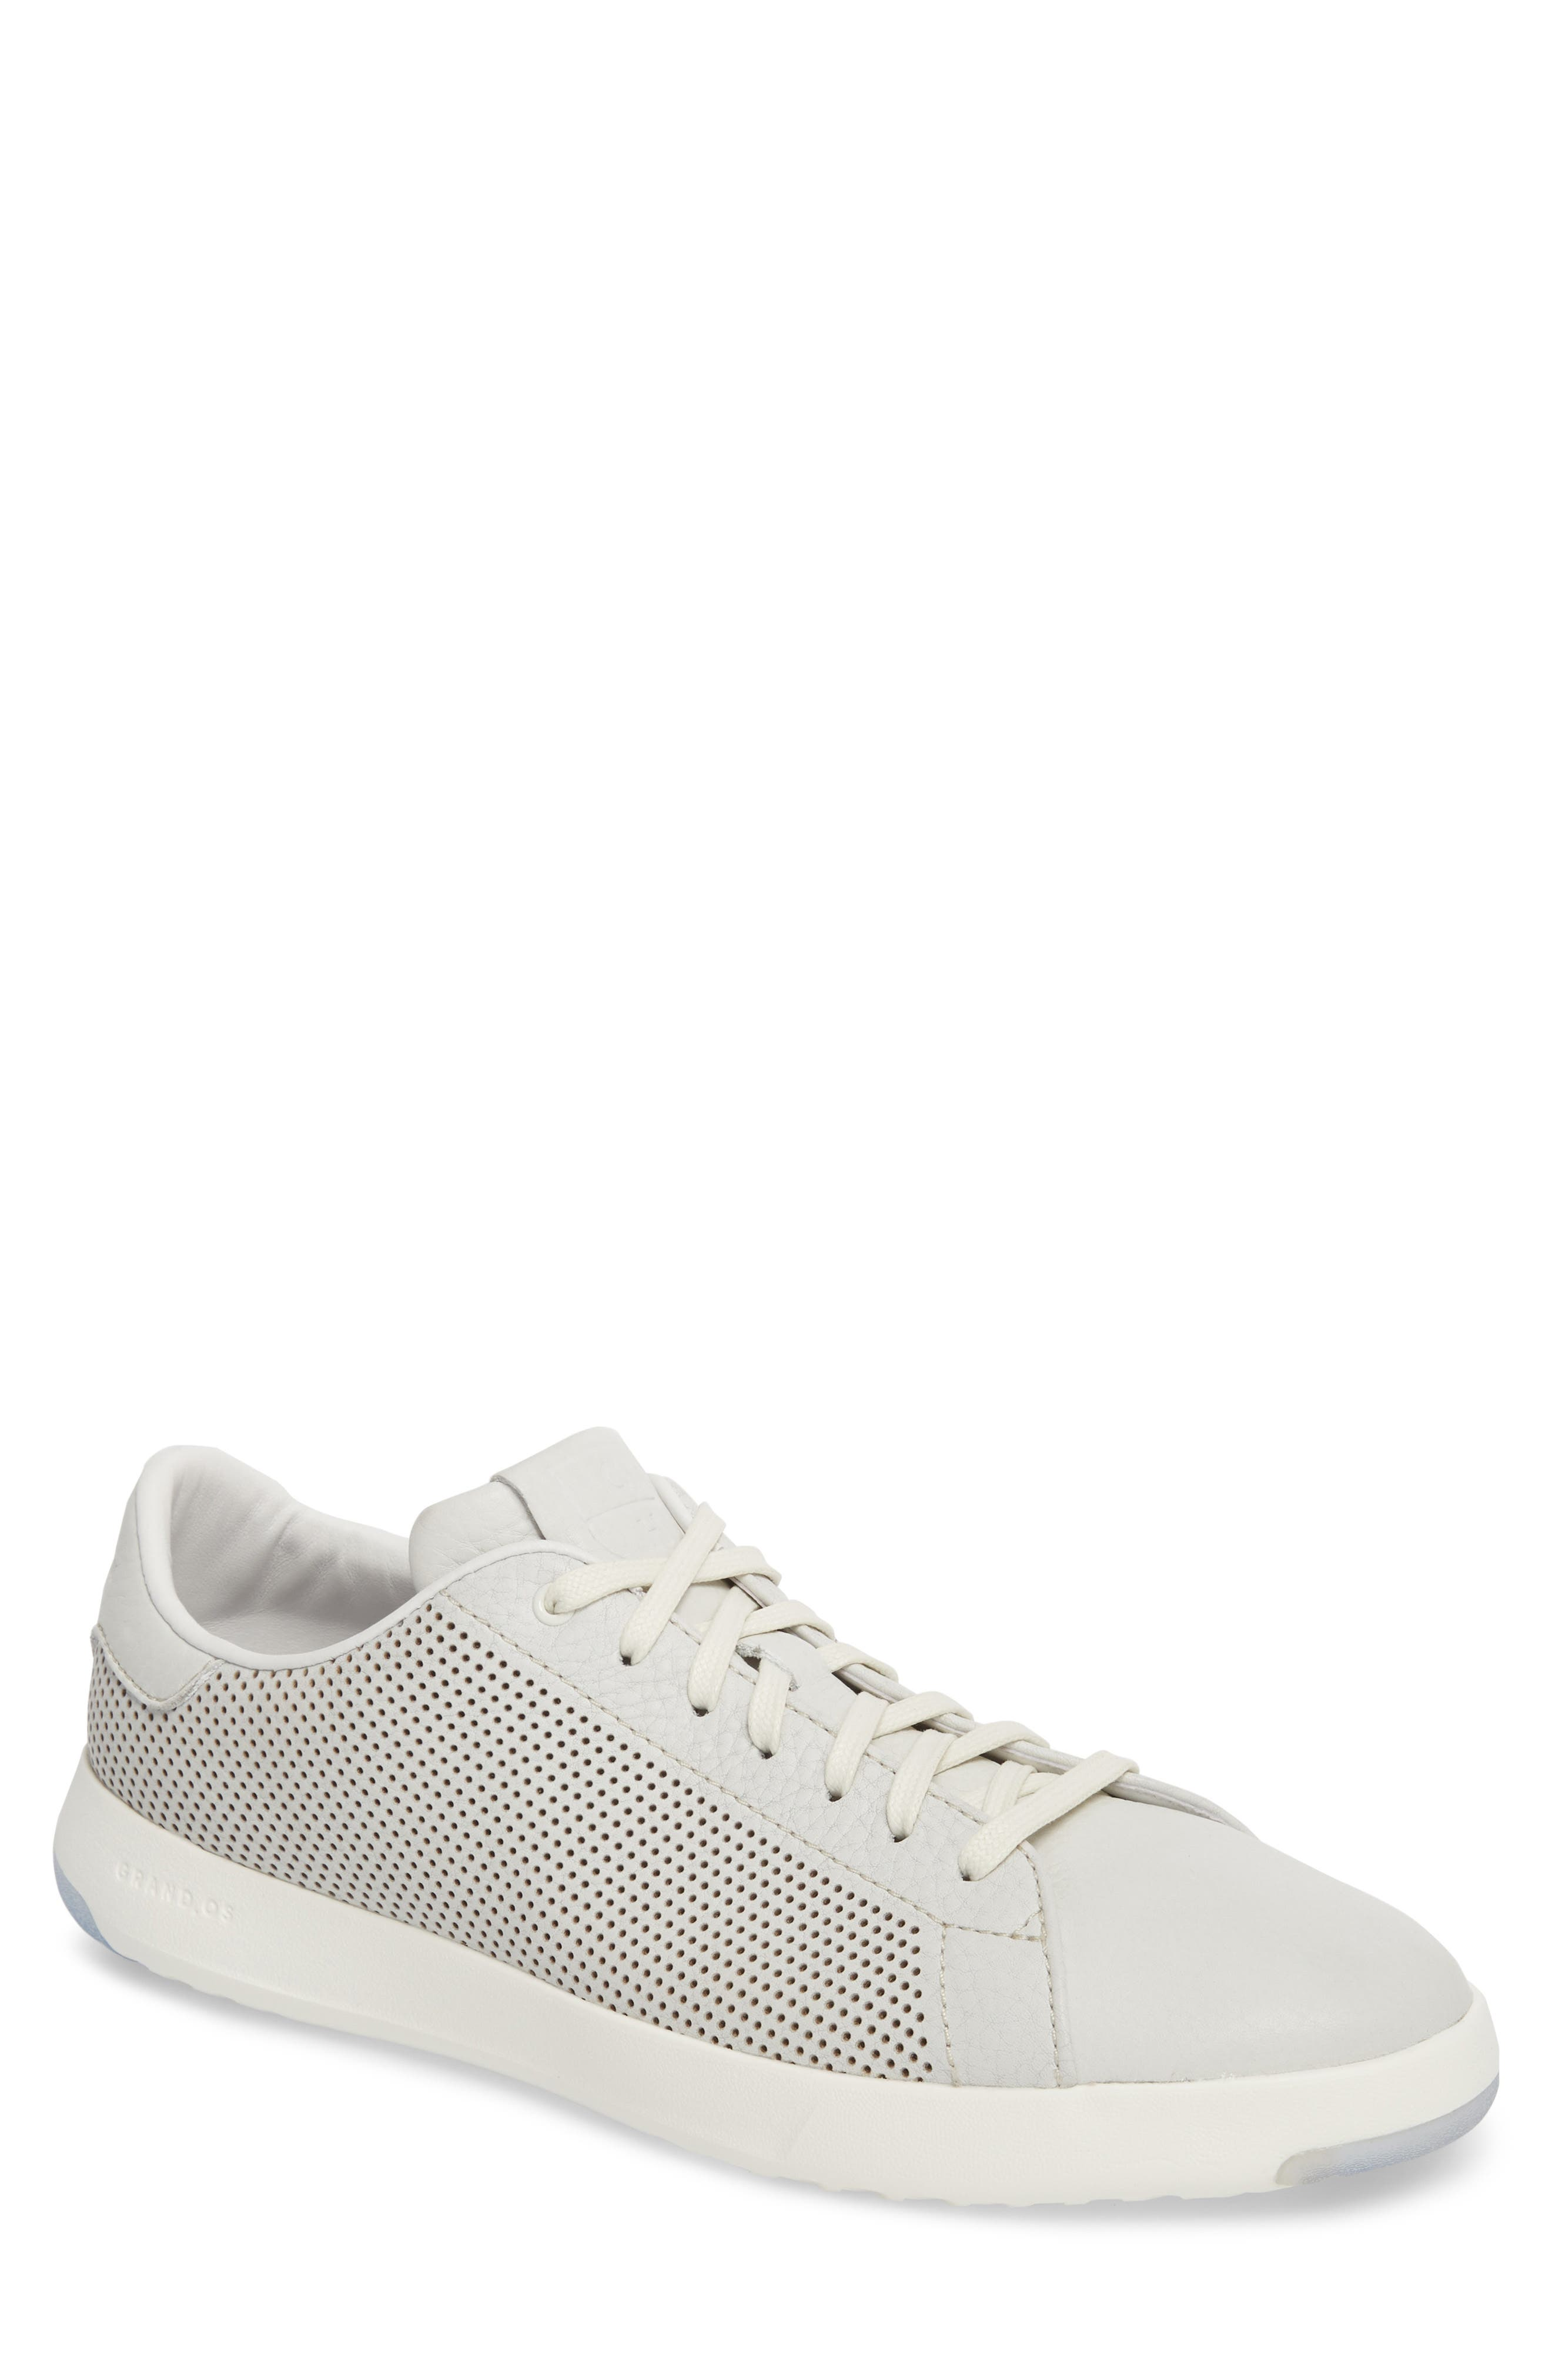 GrandPrø Perforated Low Top Sneaker,                             Main thumbnail 1, color,                             WHITE TUM LEATHER